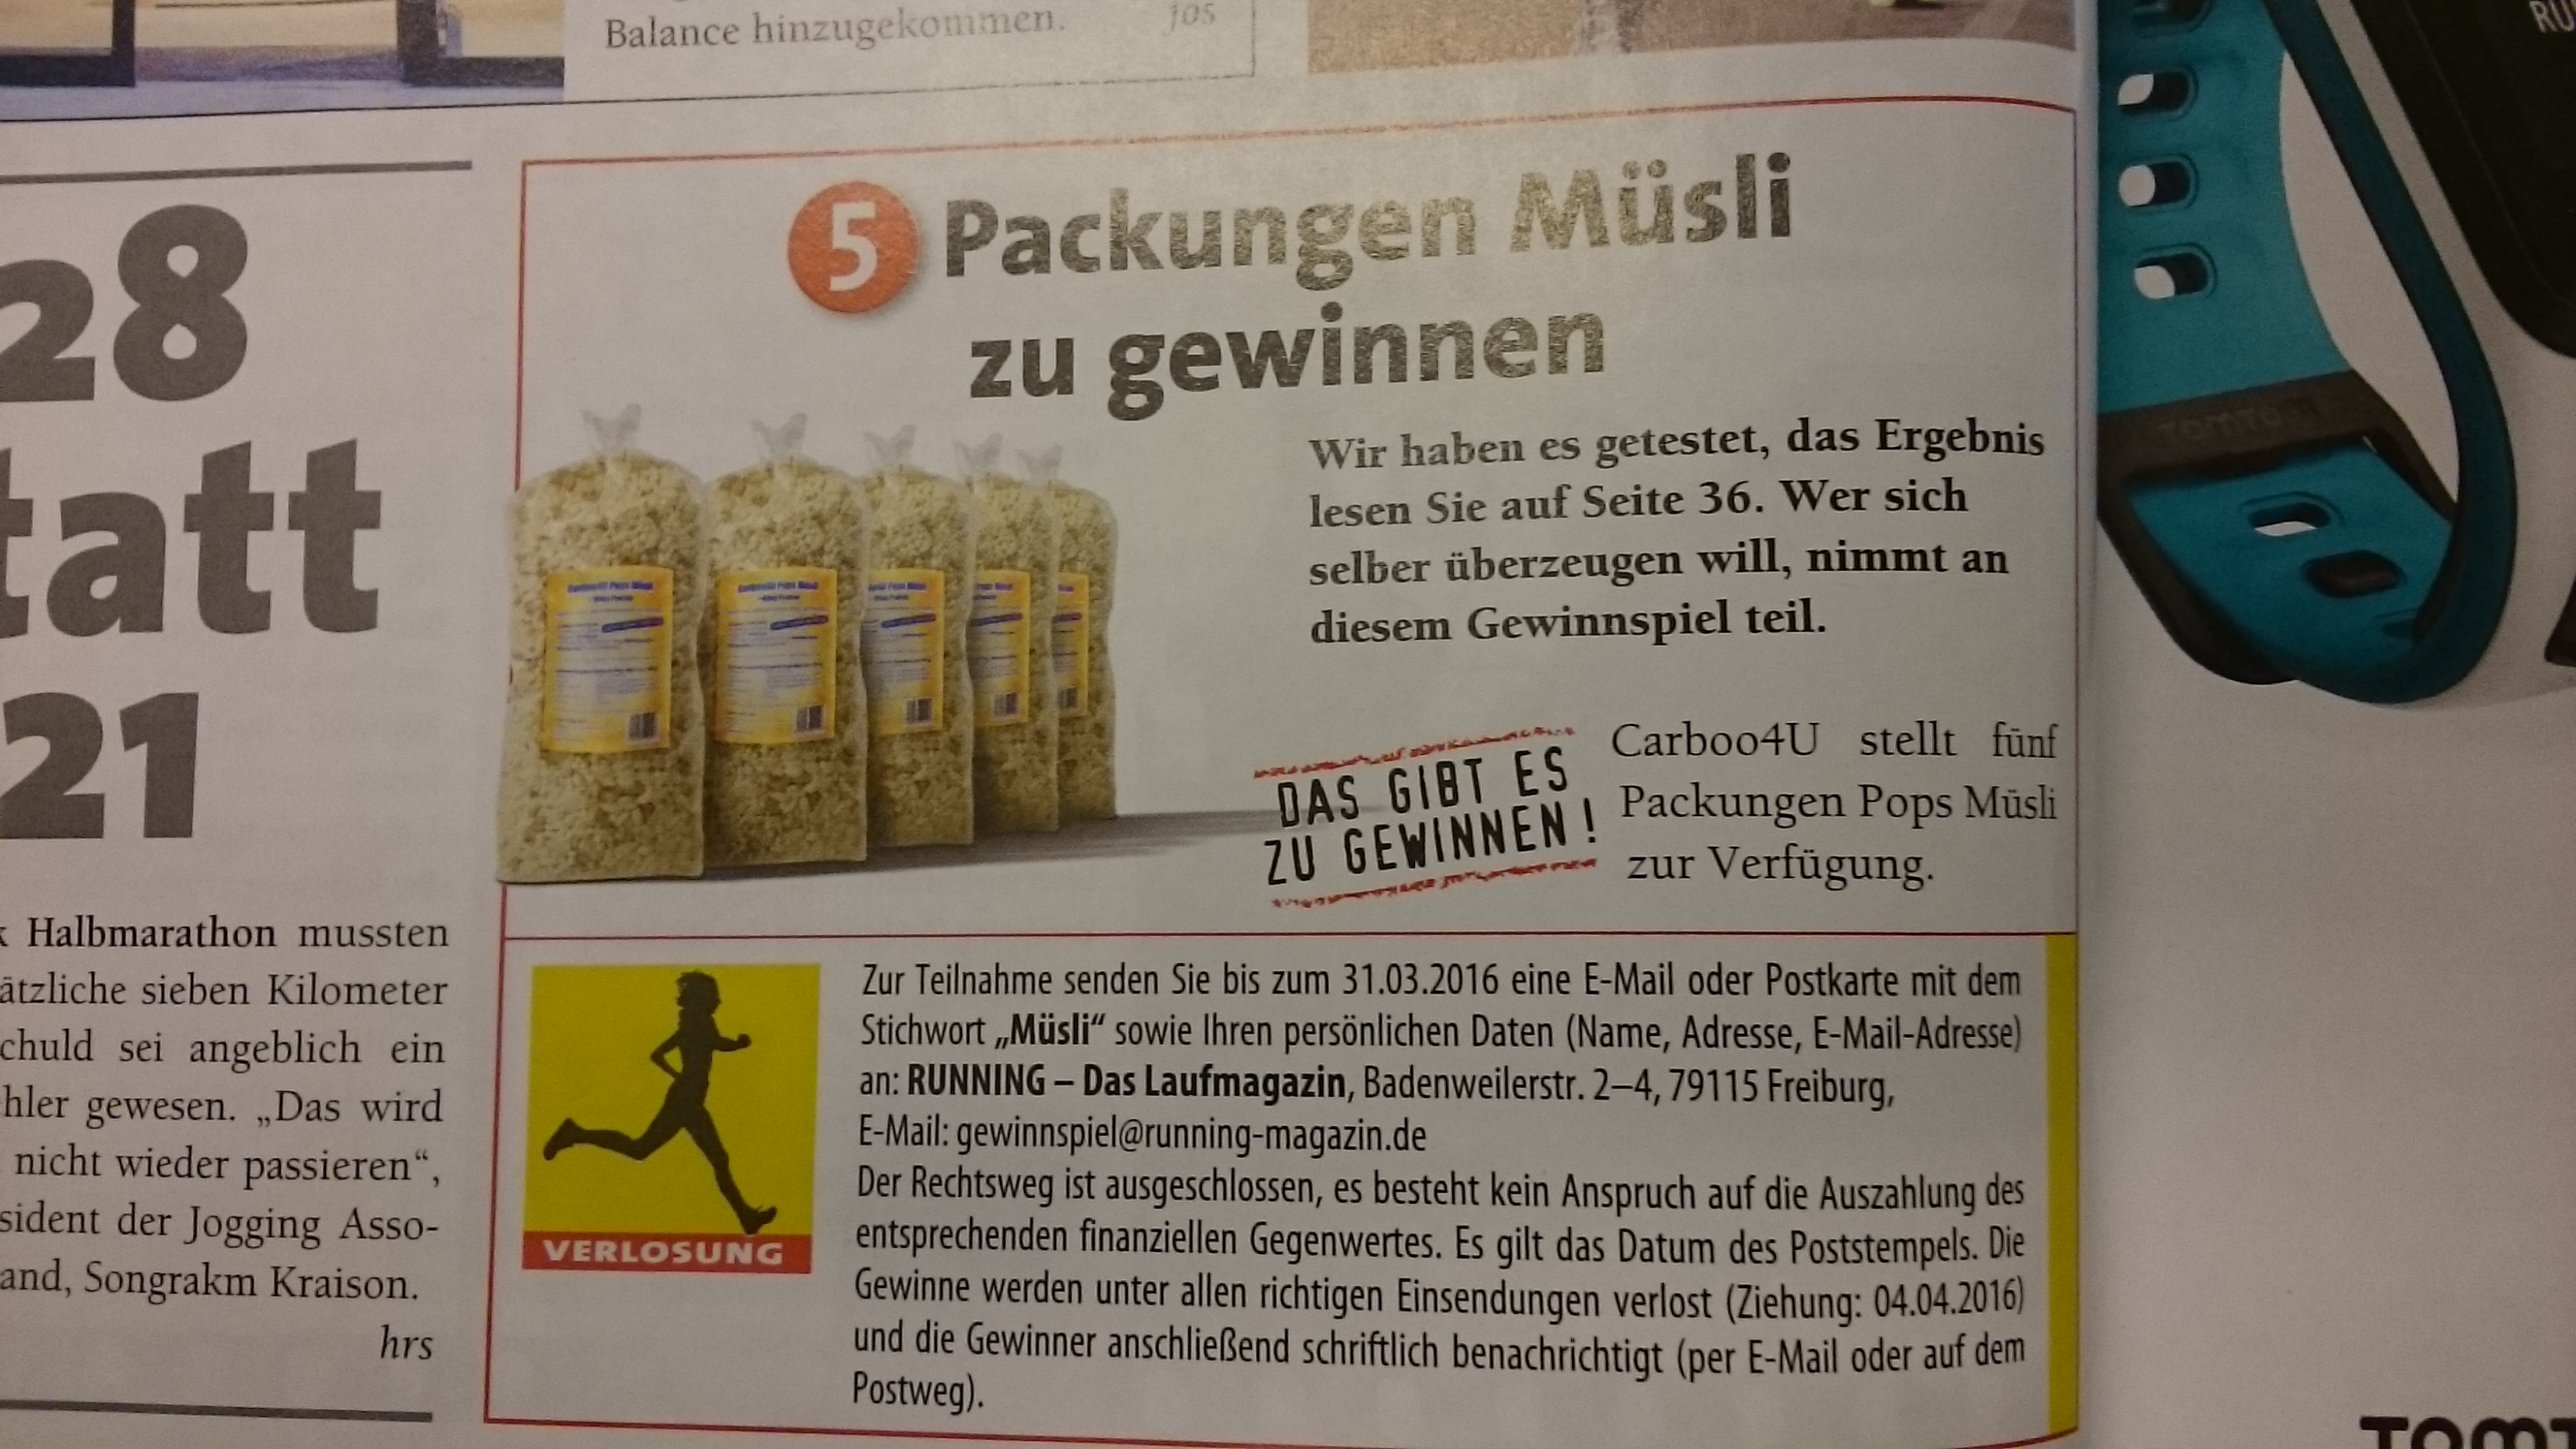 Gewinnspiel - Running - Carboo4U Pops Muesli - carboo-shop.de - http://www.carboo-shop.de/index.php?route=product/product&path=116_139&product_id=74